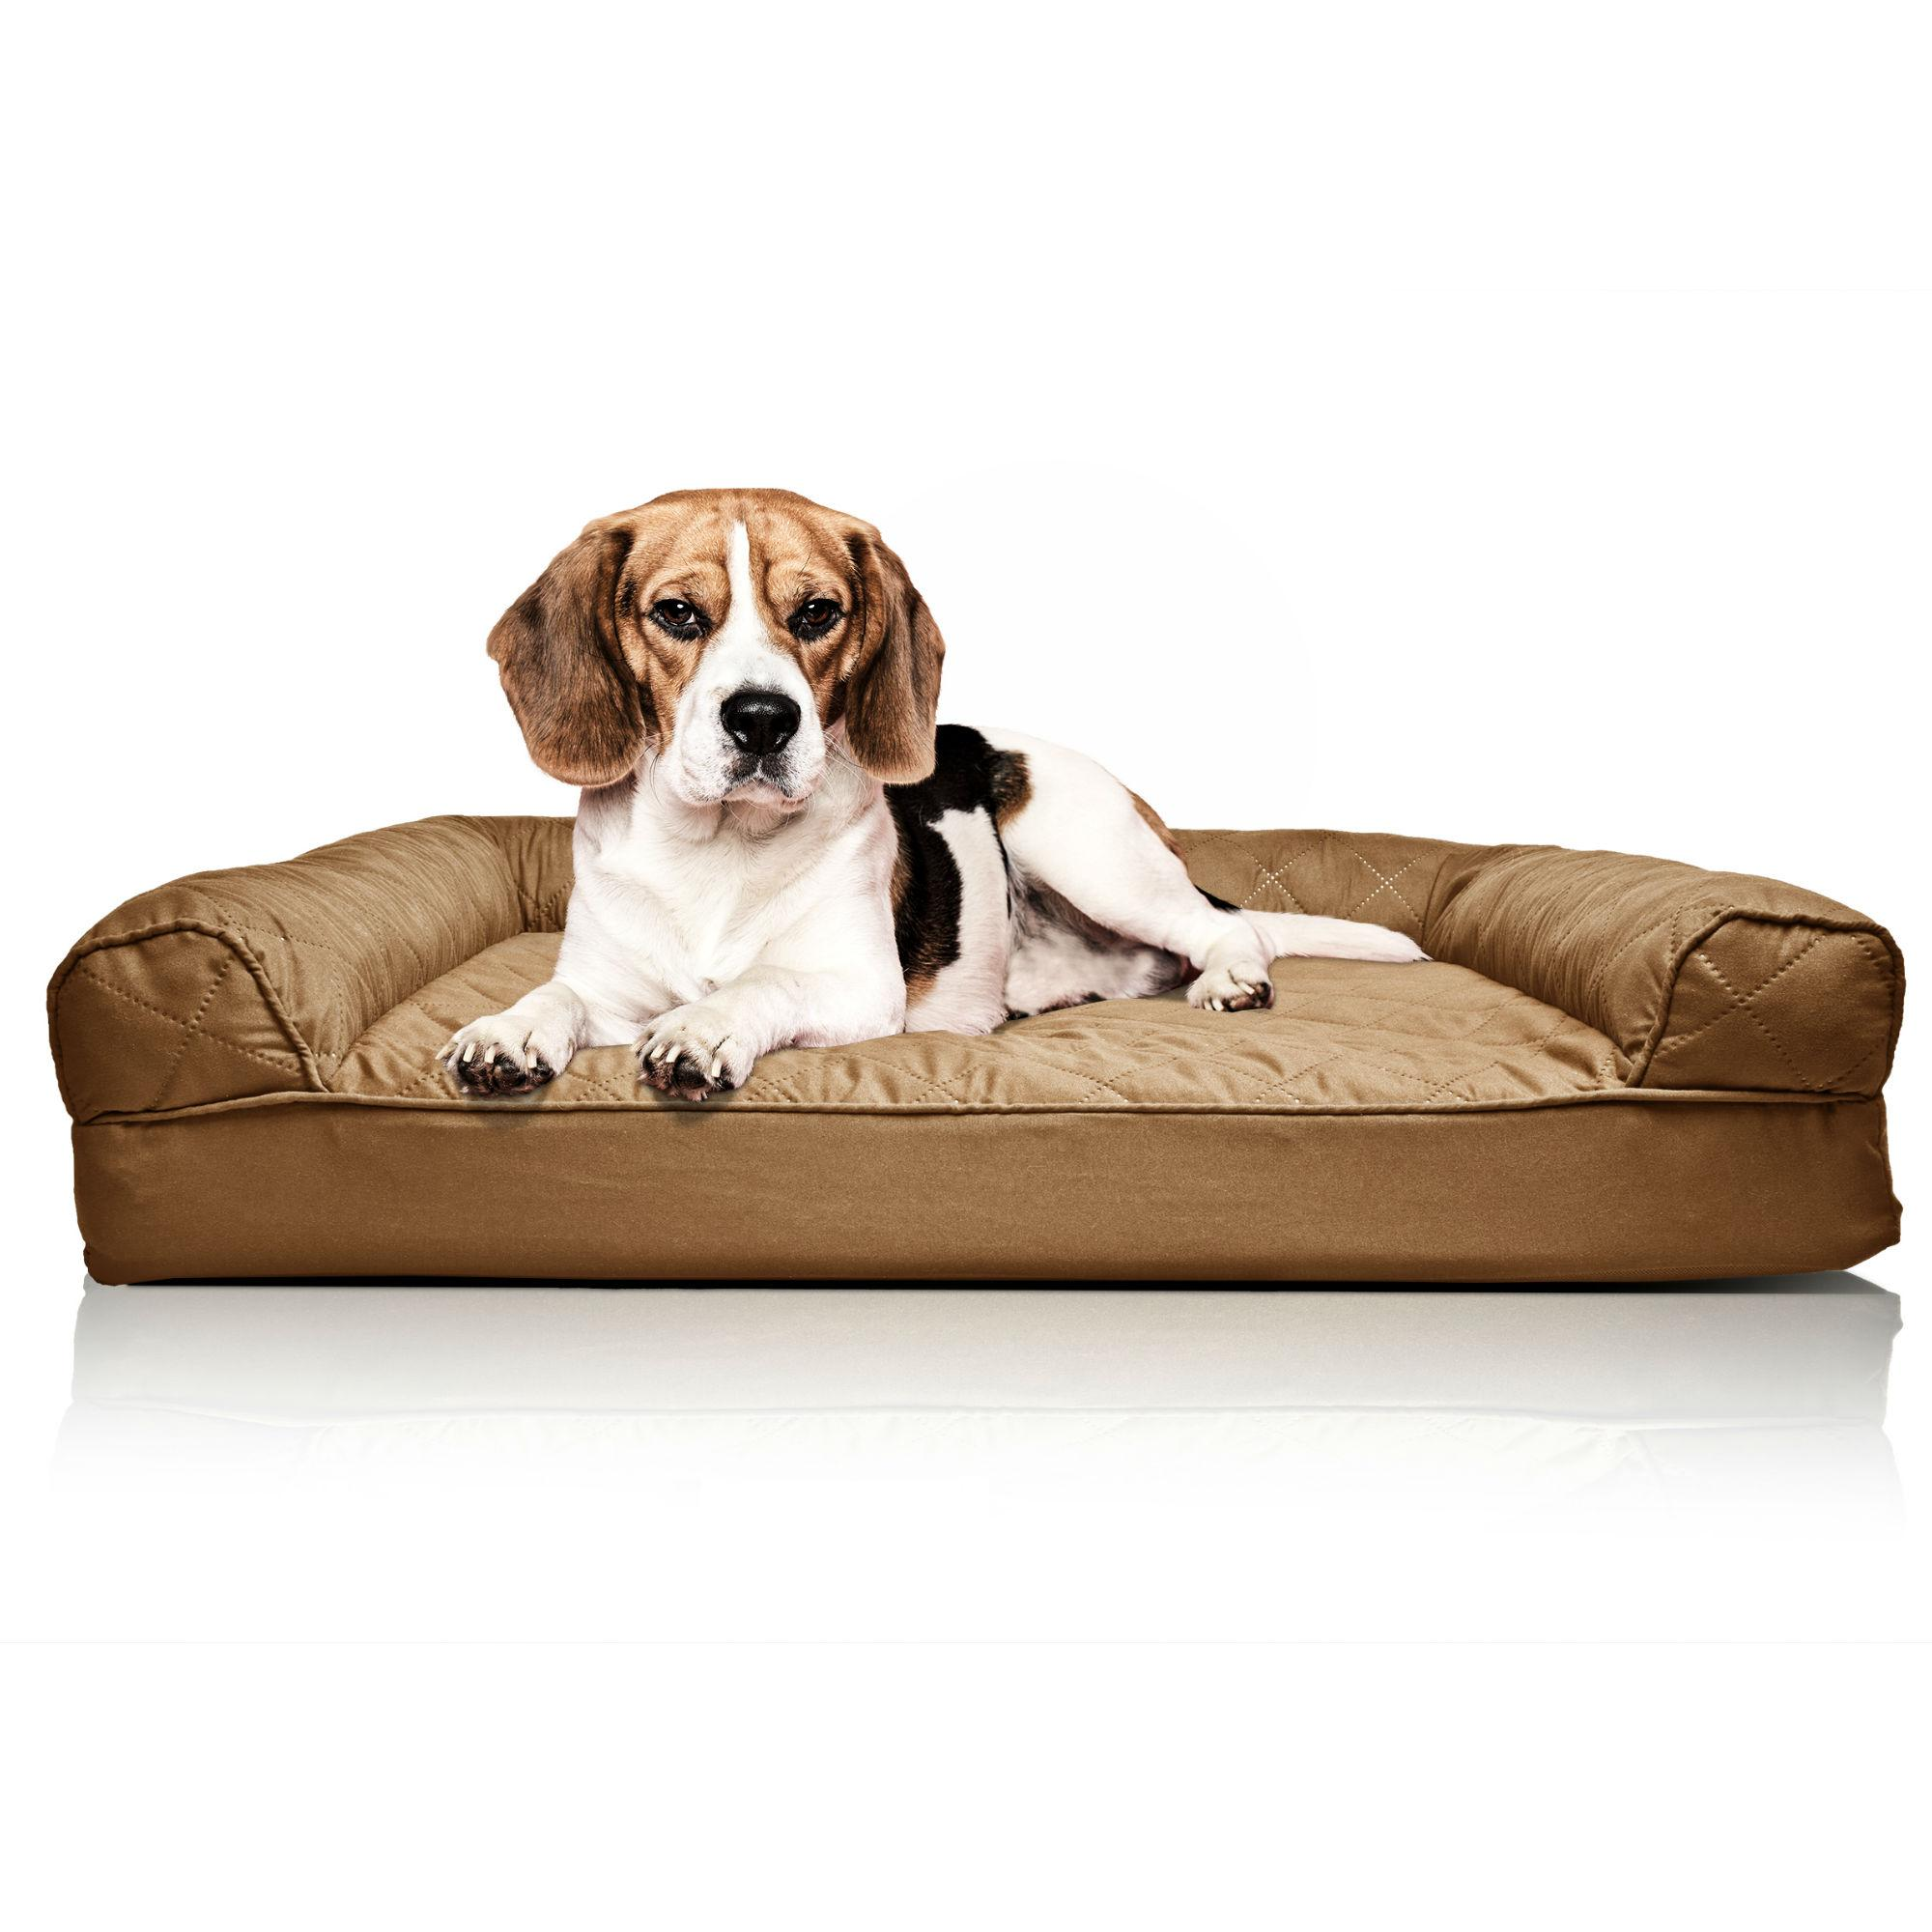 Furhaven Quilted Orthopedic Sofa Pet Bed - Warm Brown